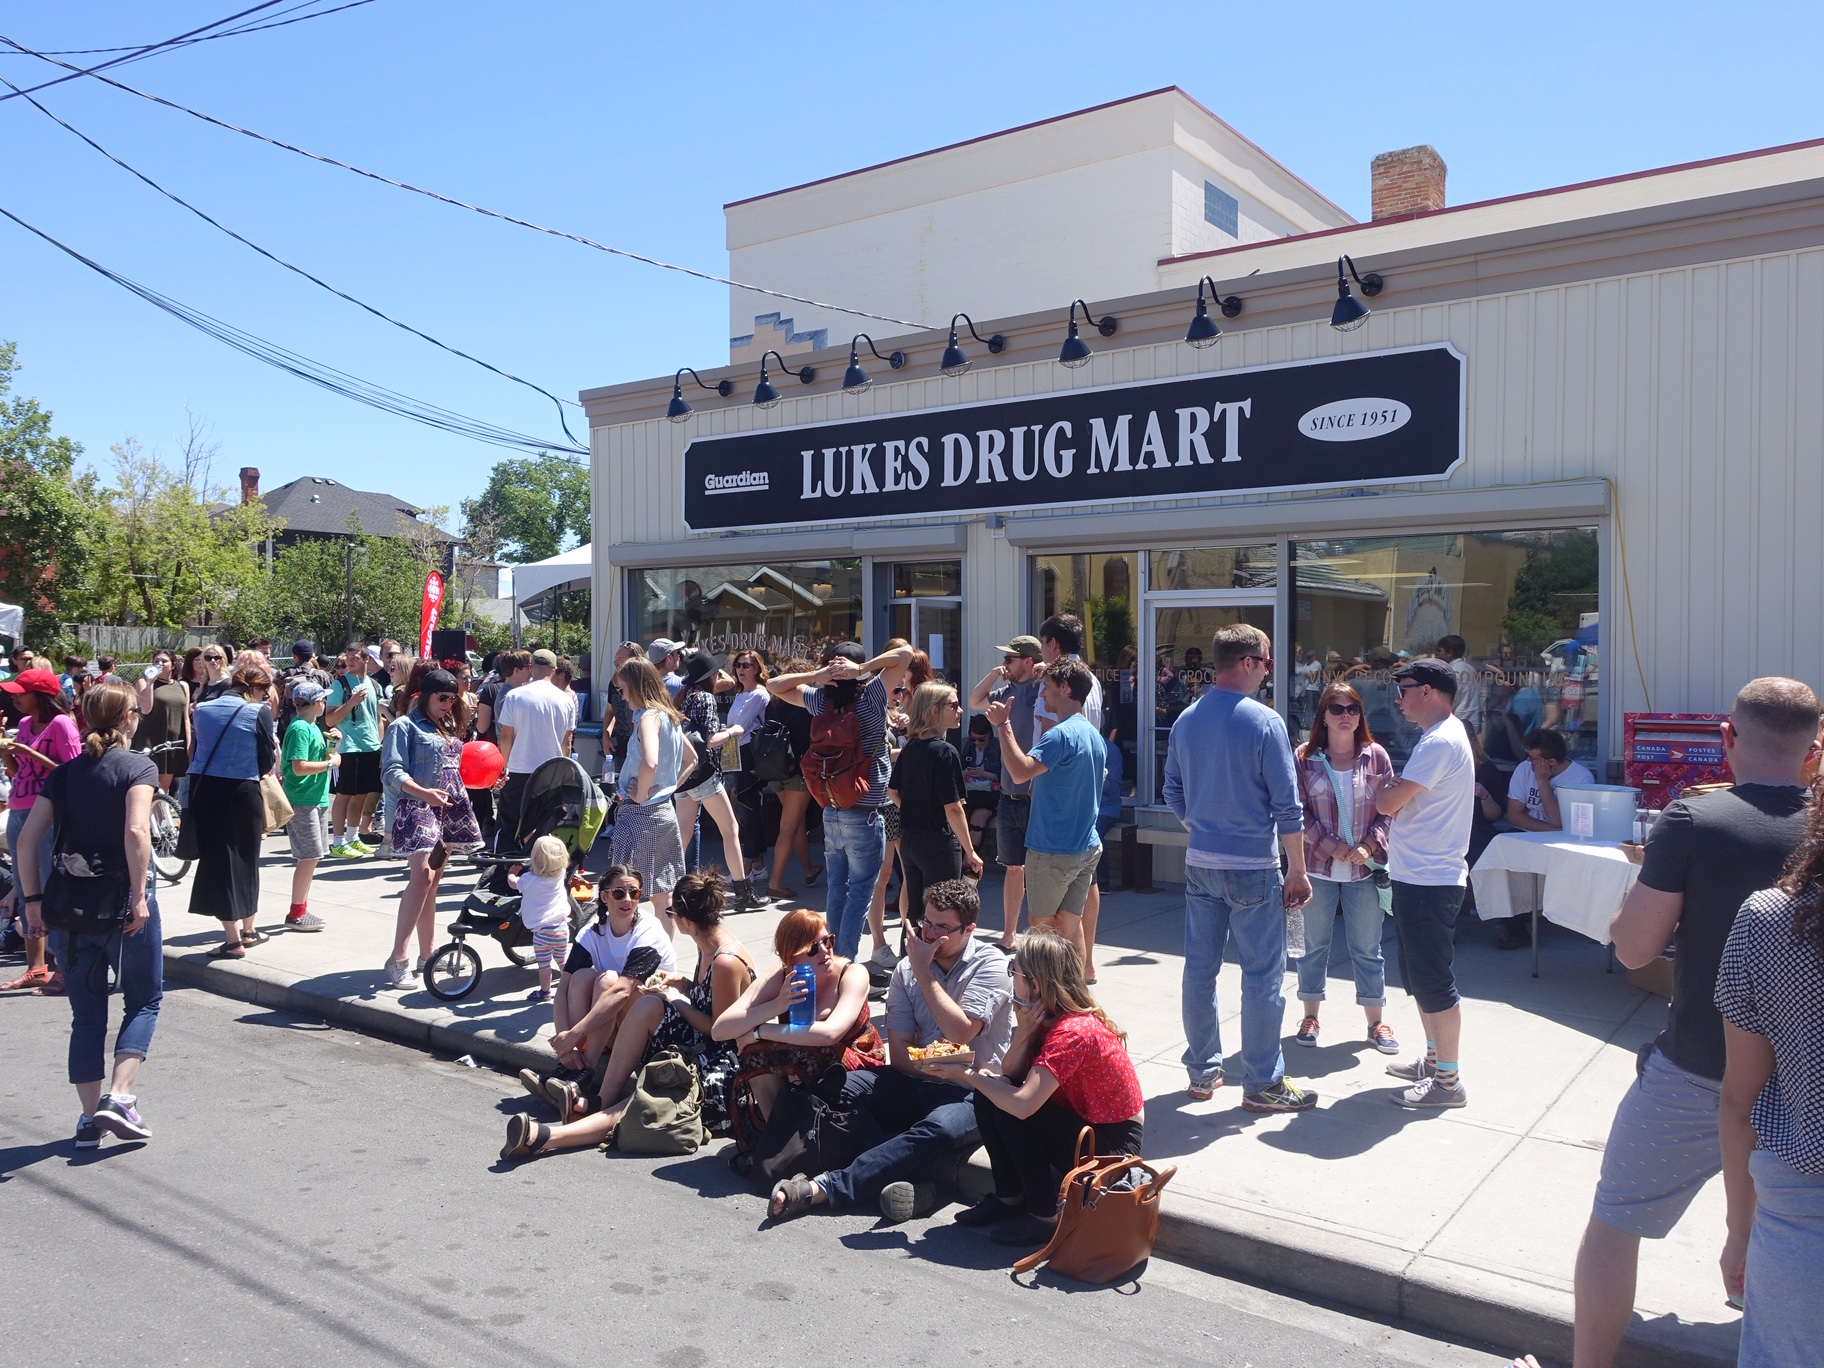 In Calgary's City Centre there are street festivals pretty much ever weekend from May to September like this one outside Bridgland's iconic Lukes Drug Mart a funky cafe, record store, grocery store, drugstore and post office.